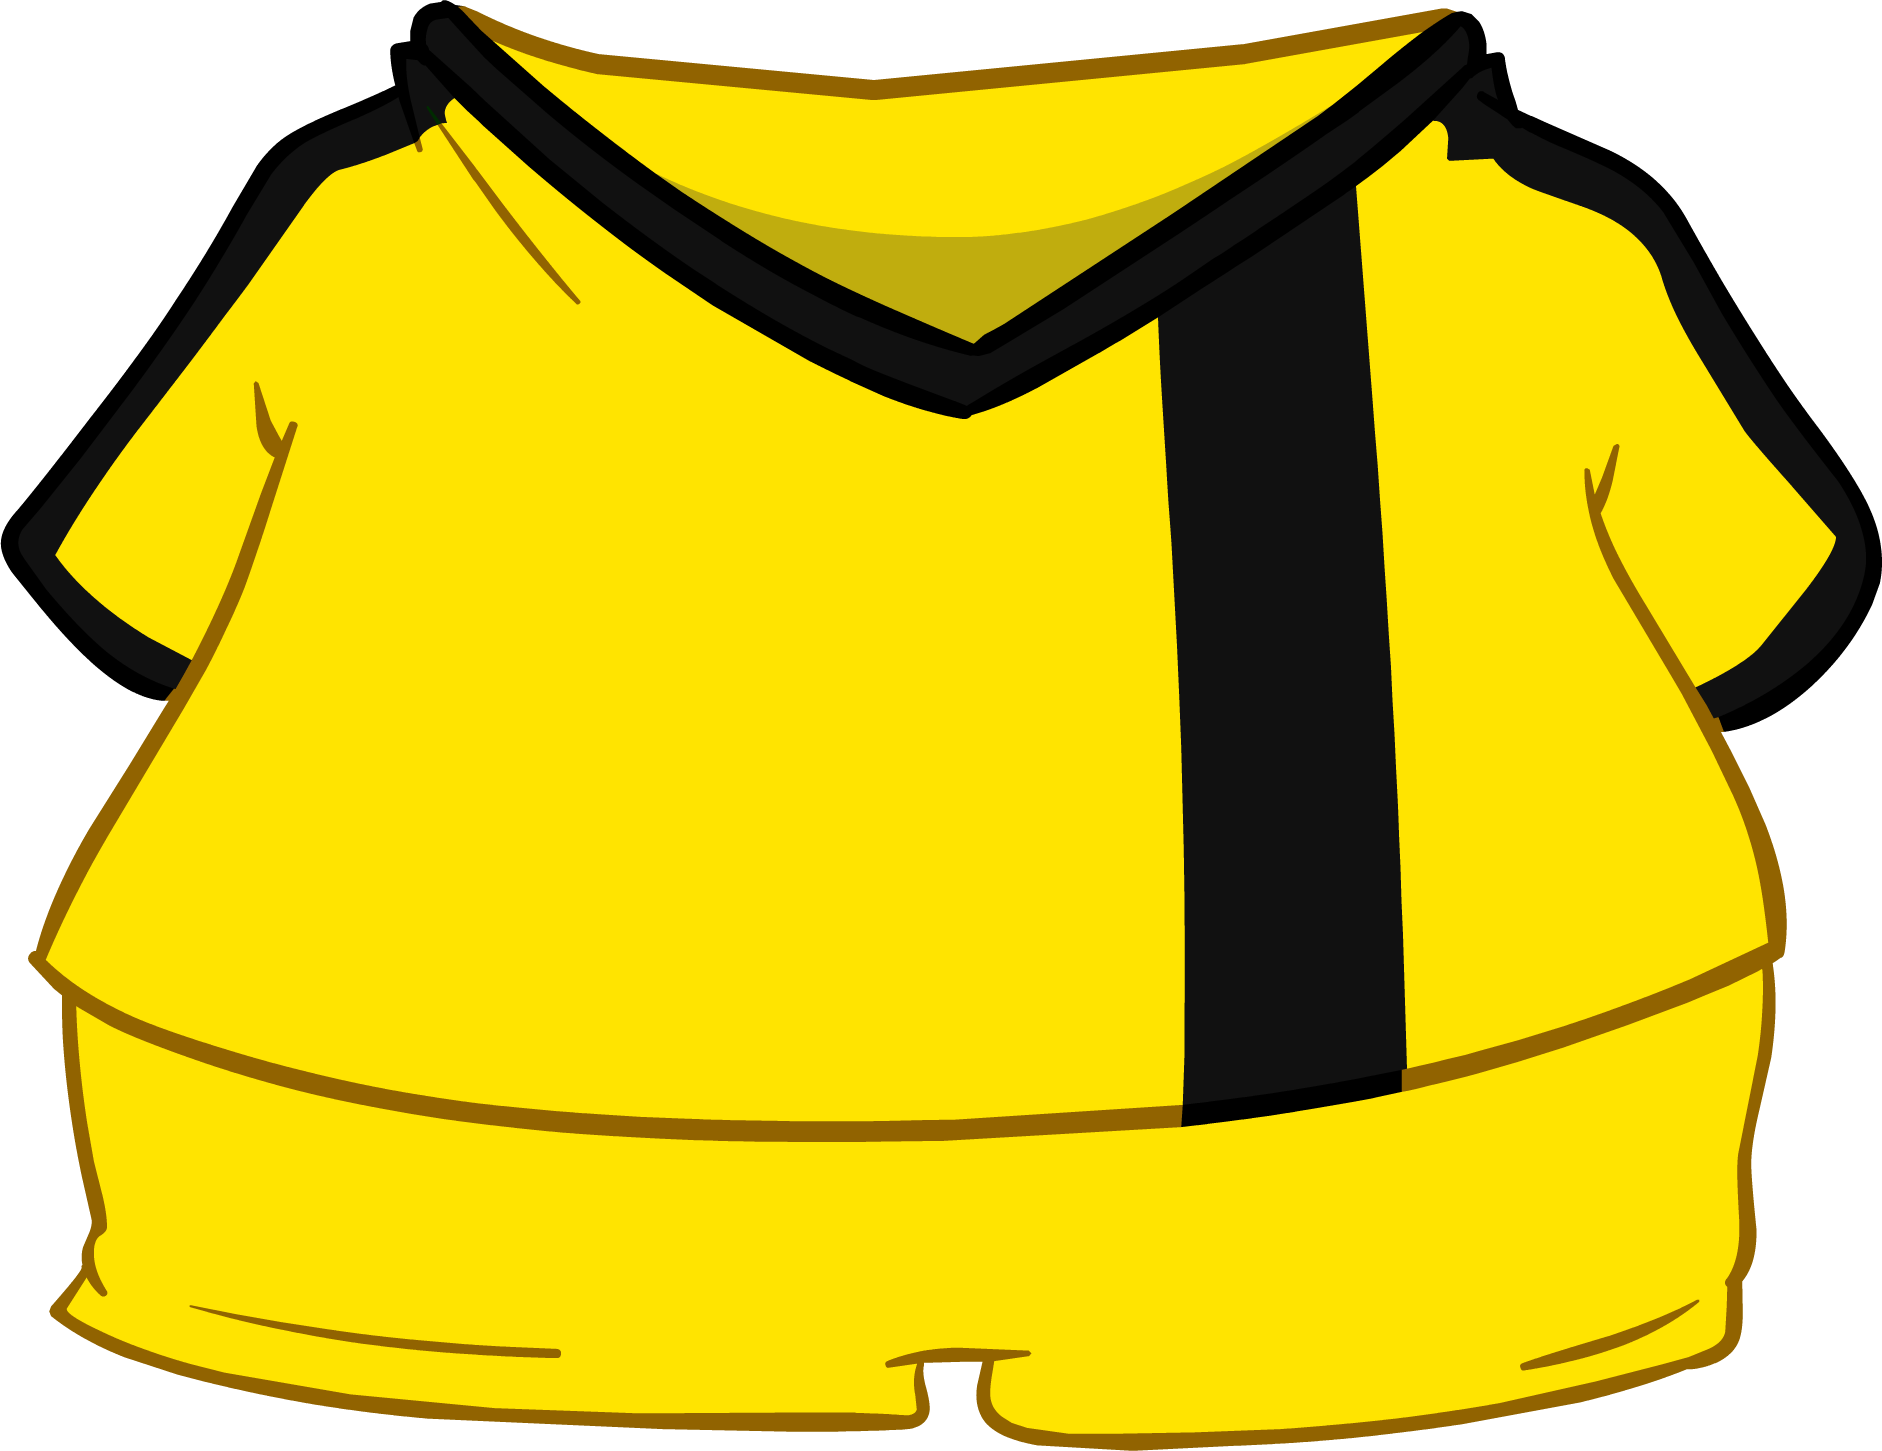 Clipart football jersey clip library Football Jersey Clipart at GetDrawings.com | Free for personal use ... clip library